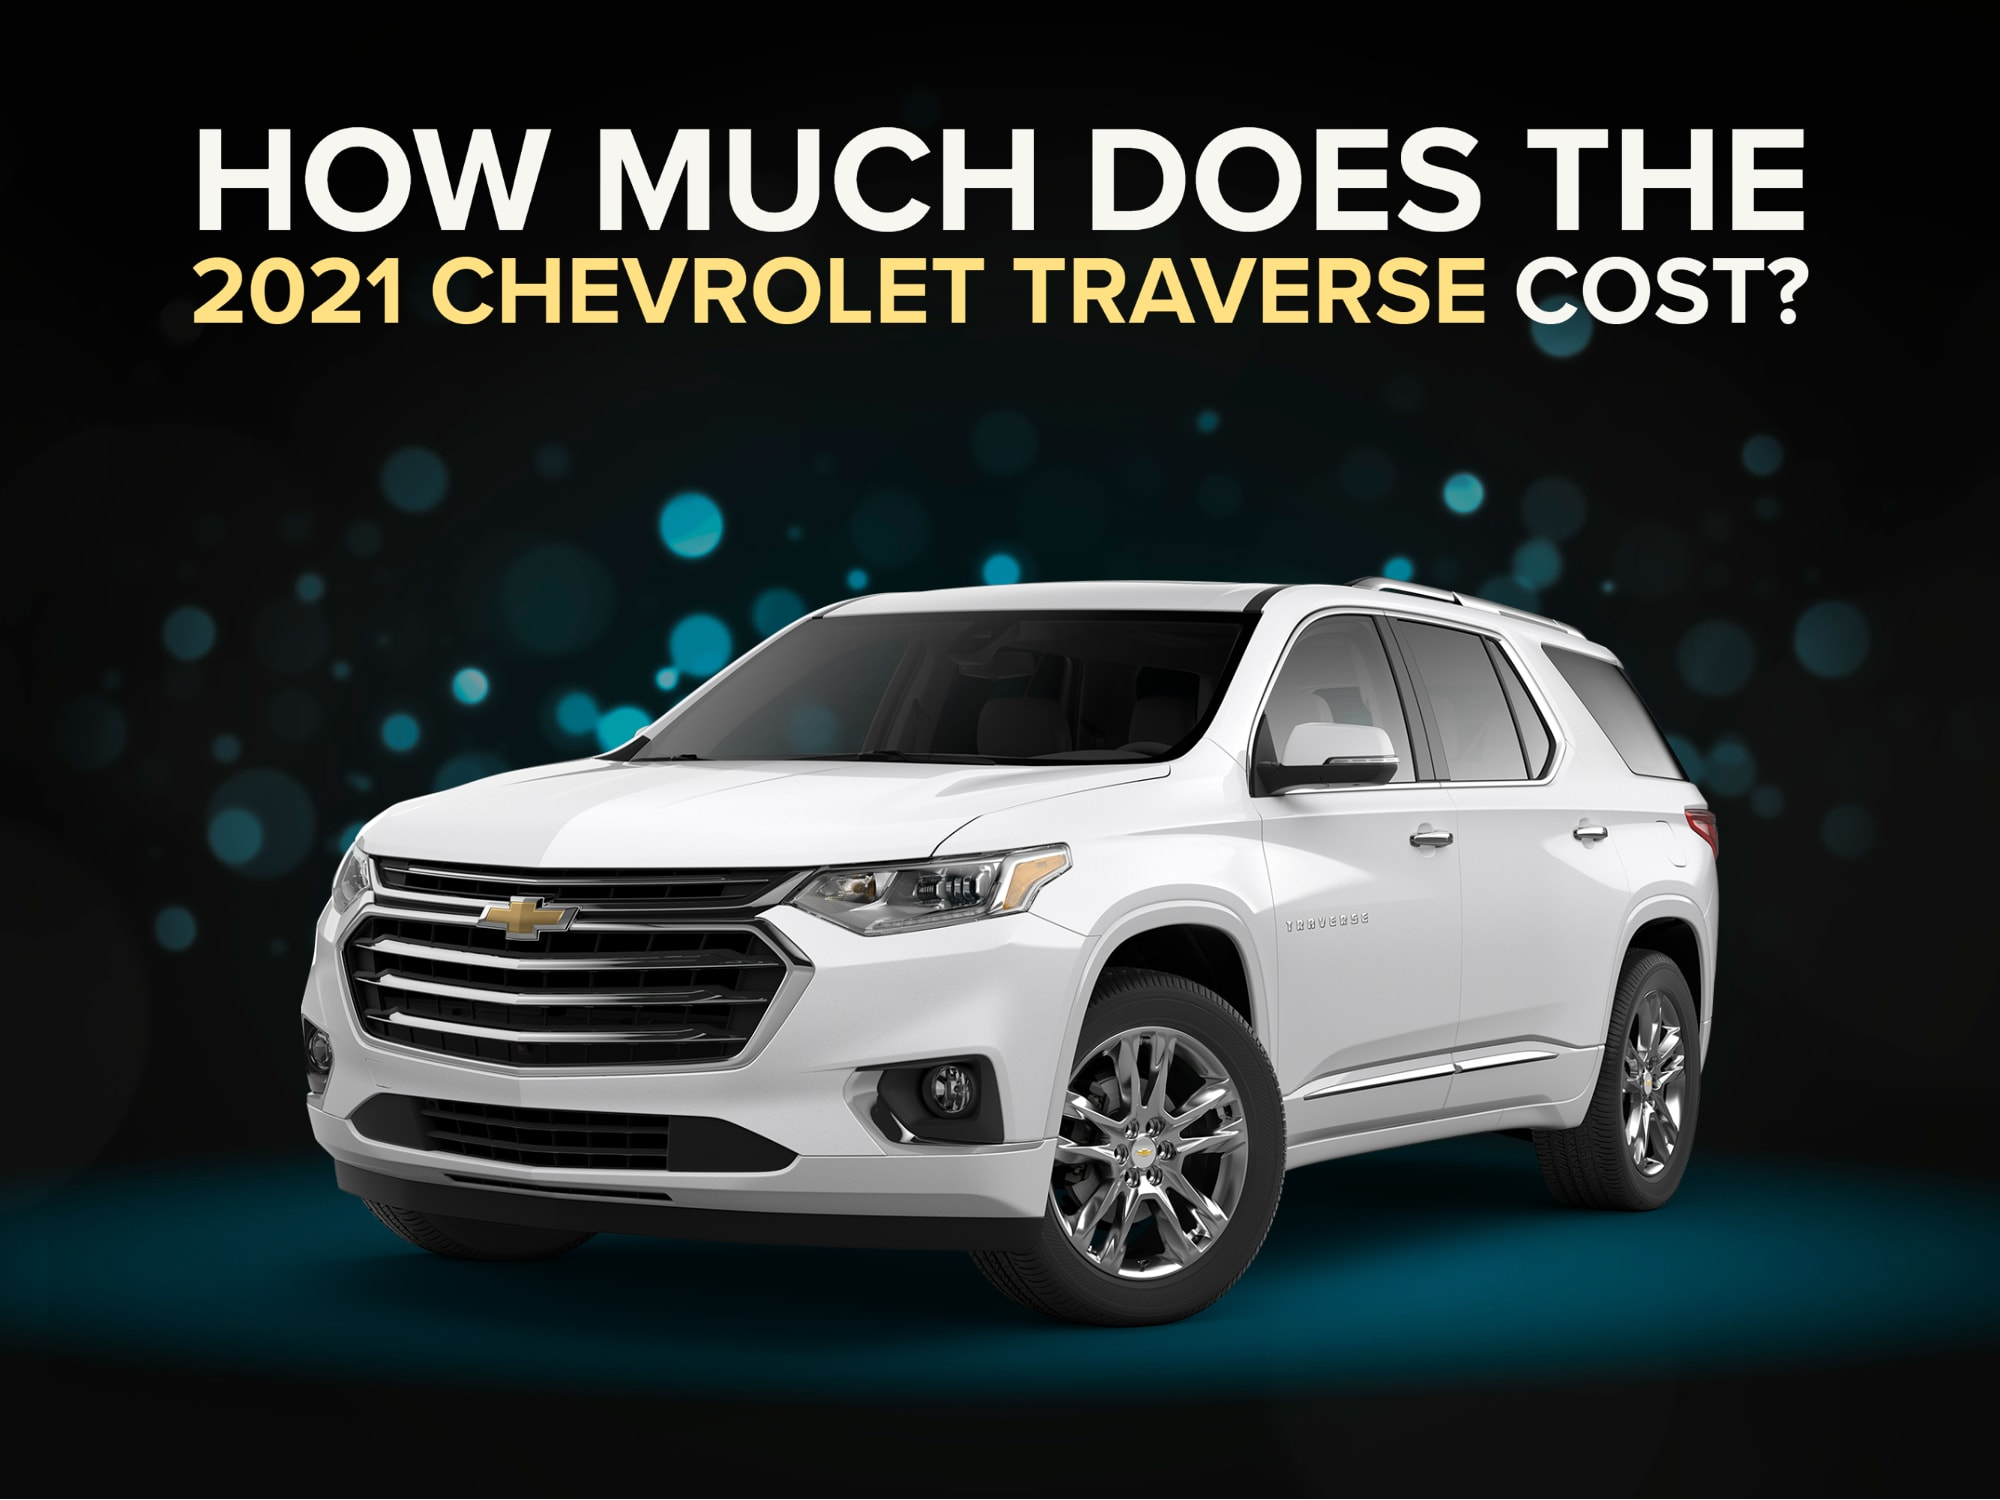 Front 3/4 view of white Chevrolet Traverse SUV with Blue Bokeh Background